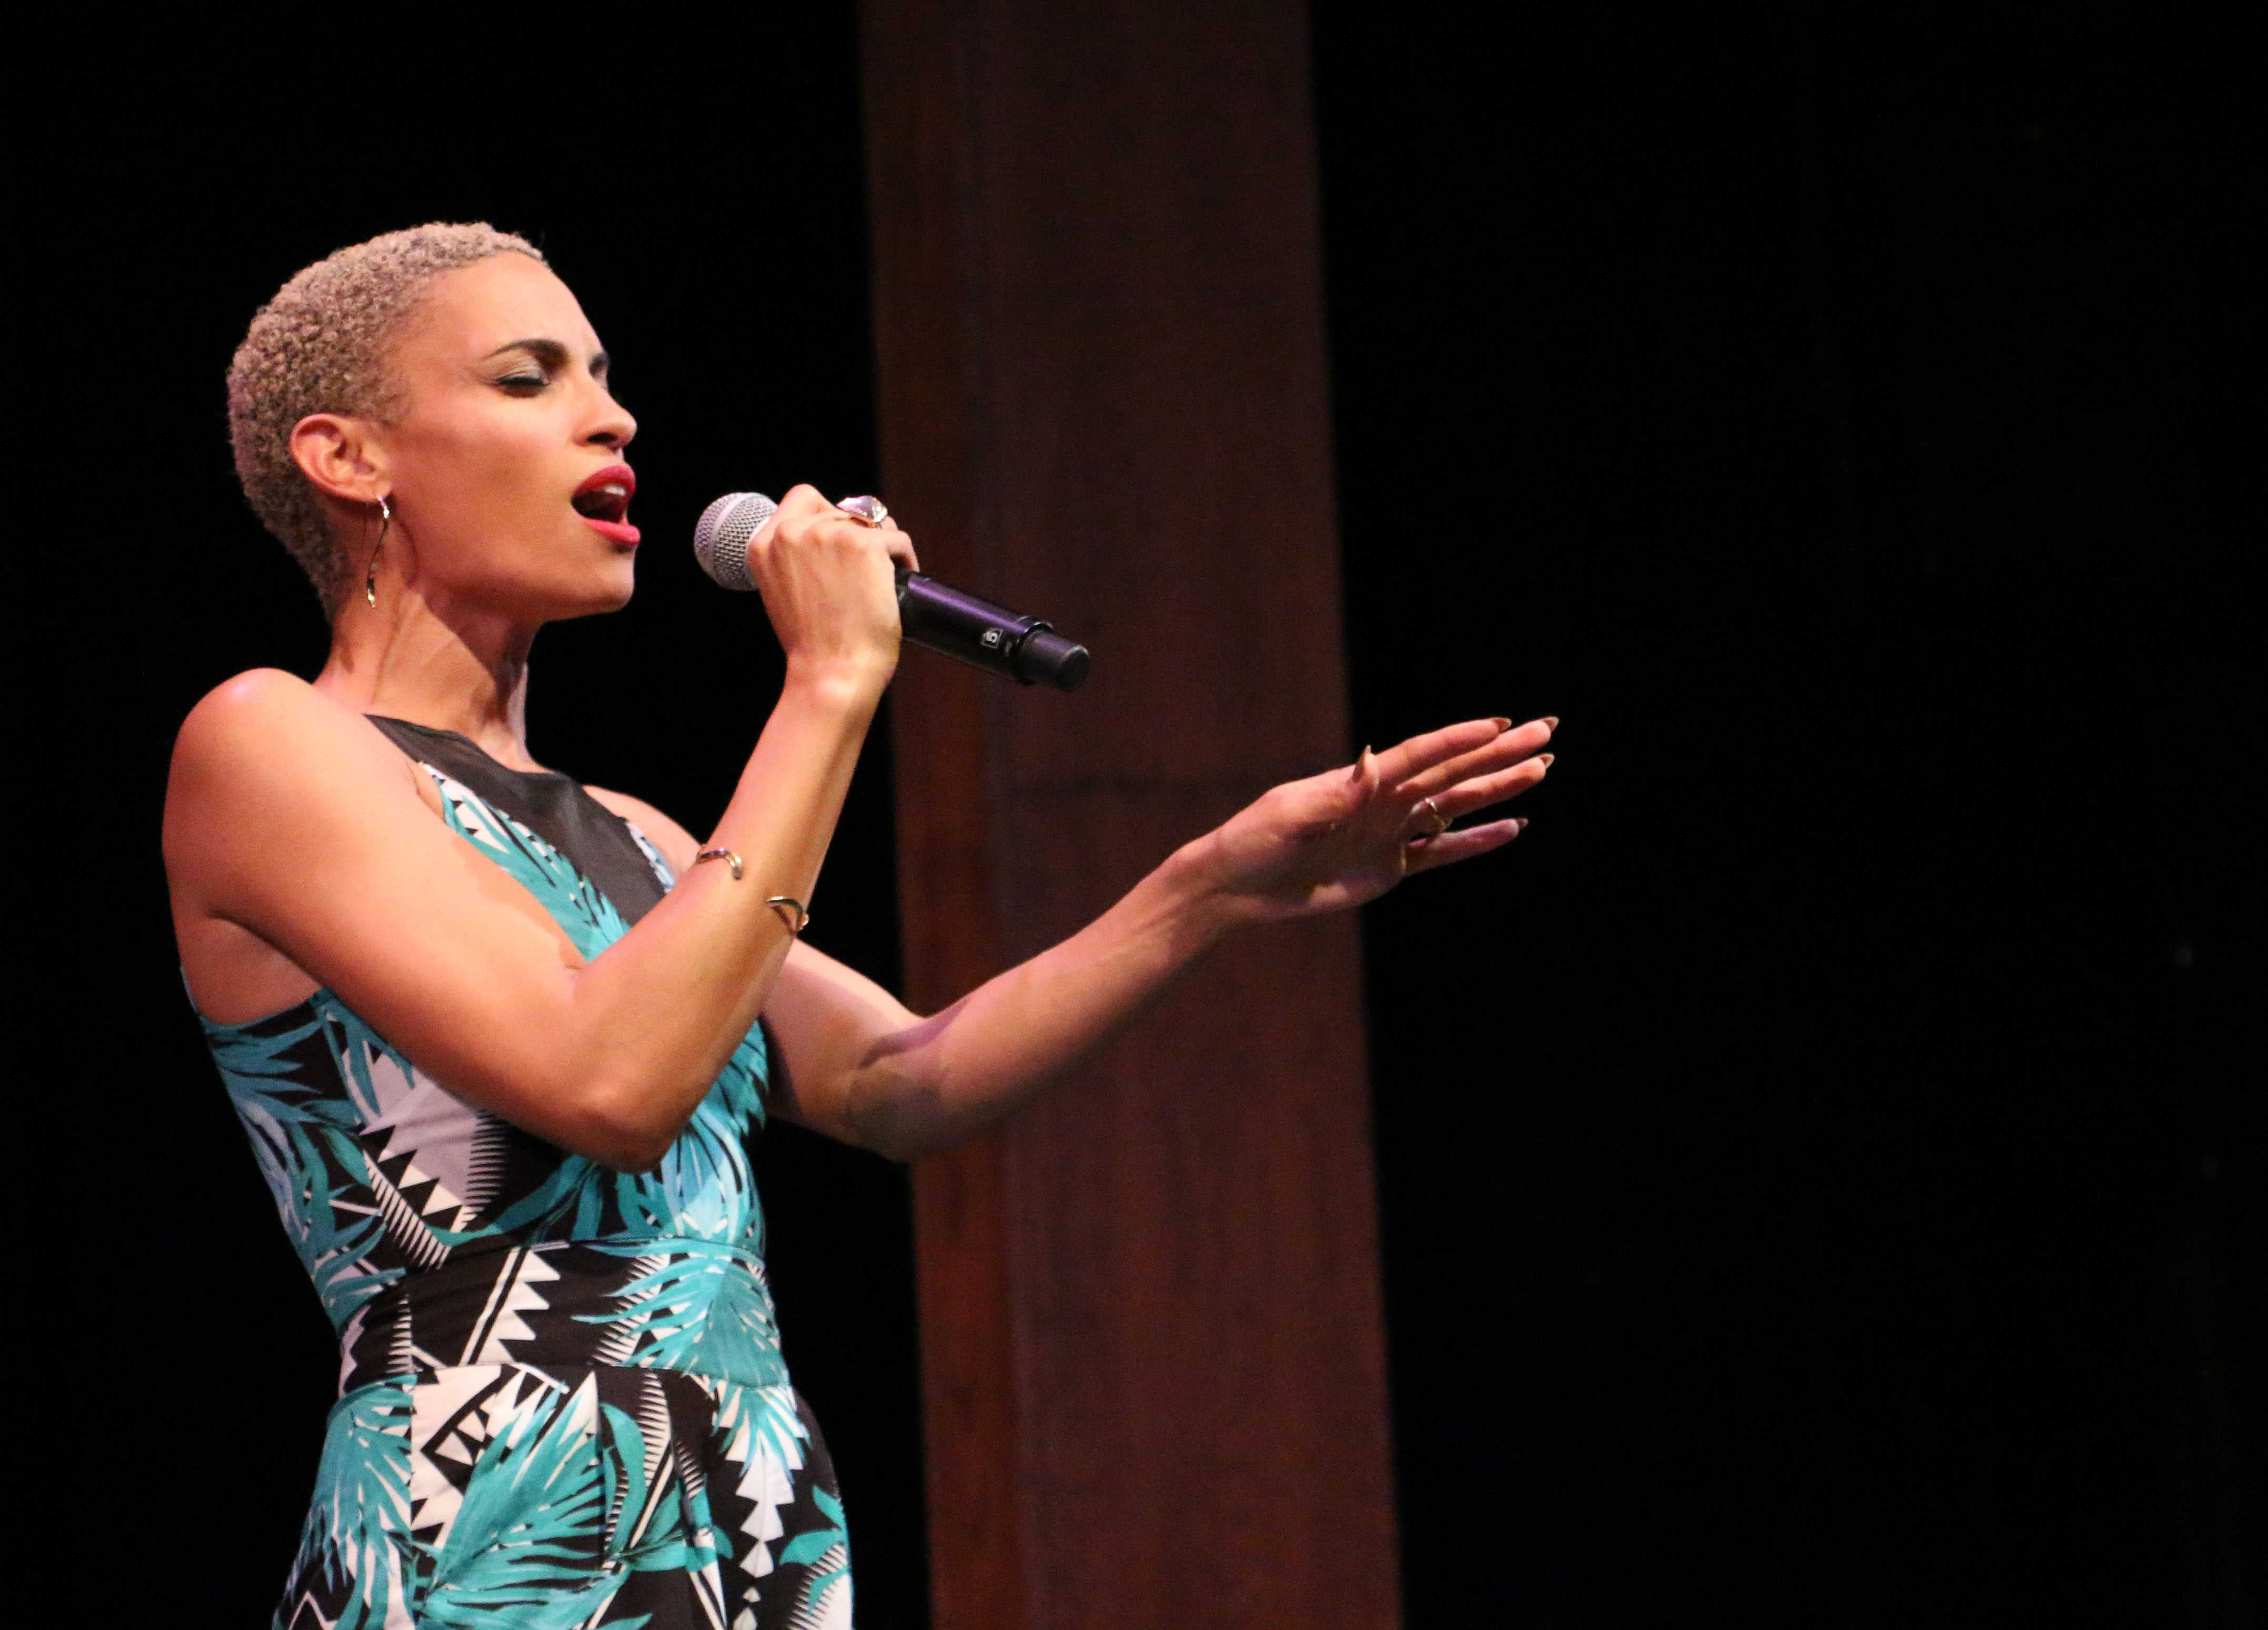 Bay Area R &B singer, Goapele, performs at Showtime at the Apollo Tuesday night.